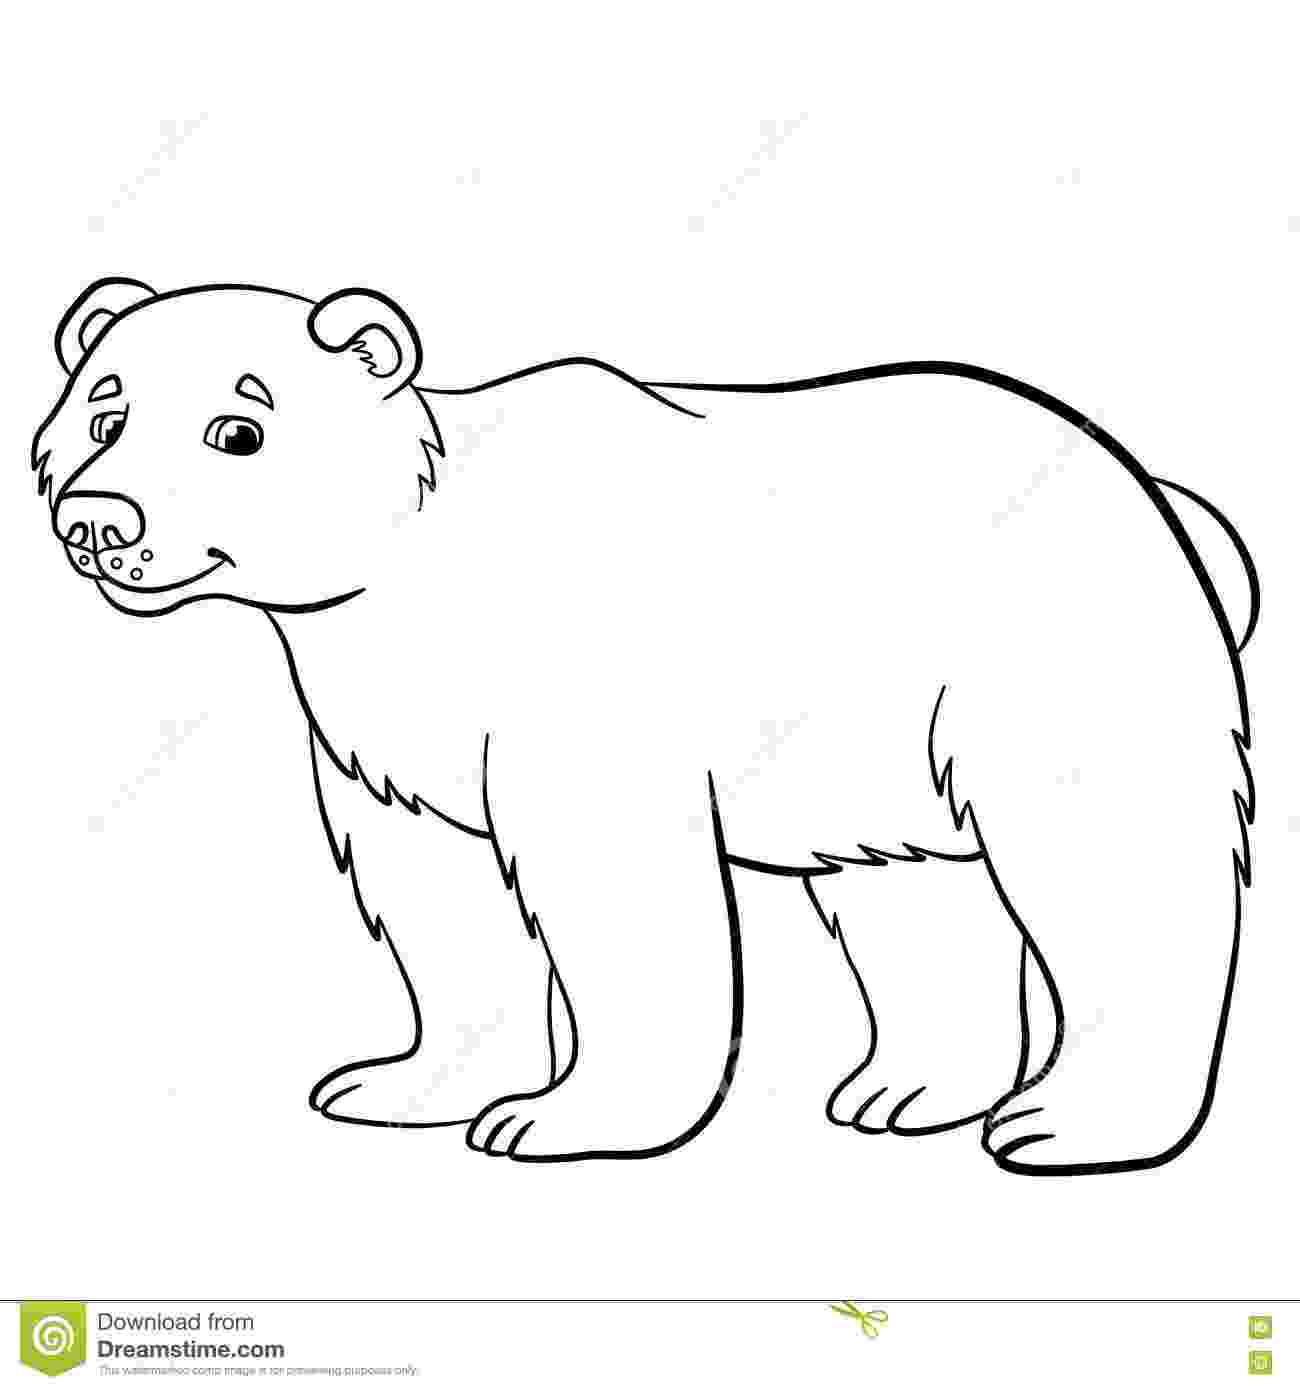 cute wild animals colouring pages coloring pages wild animals cute bear smiles stock animals colouring wild pages cute